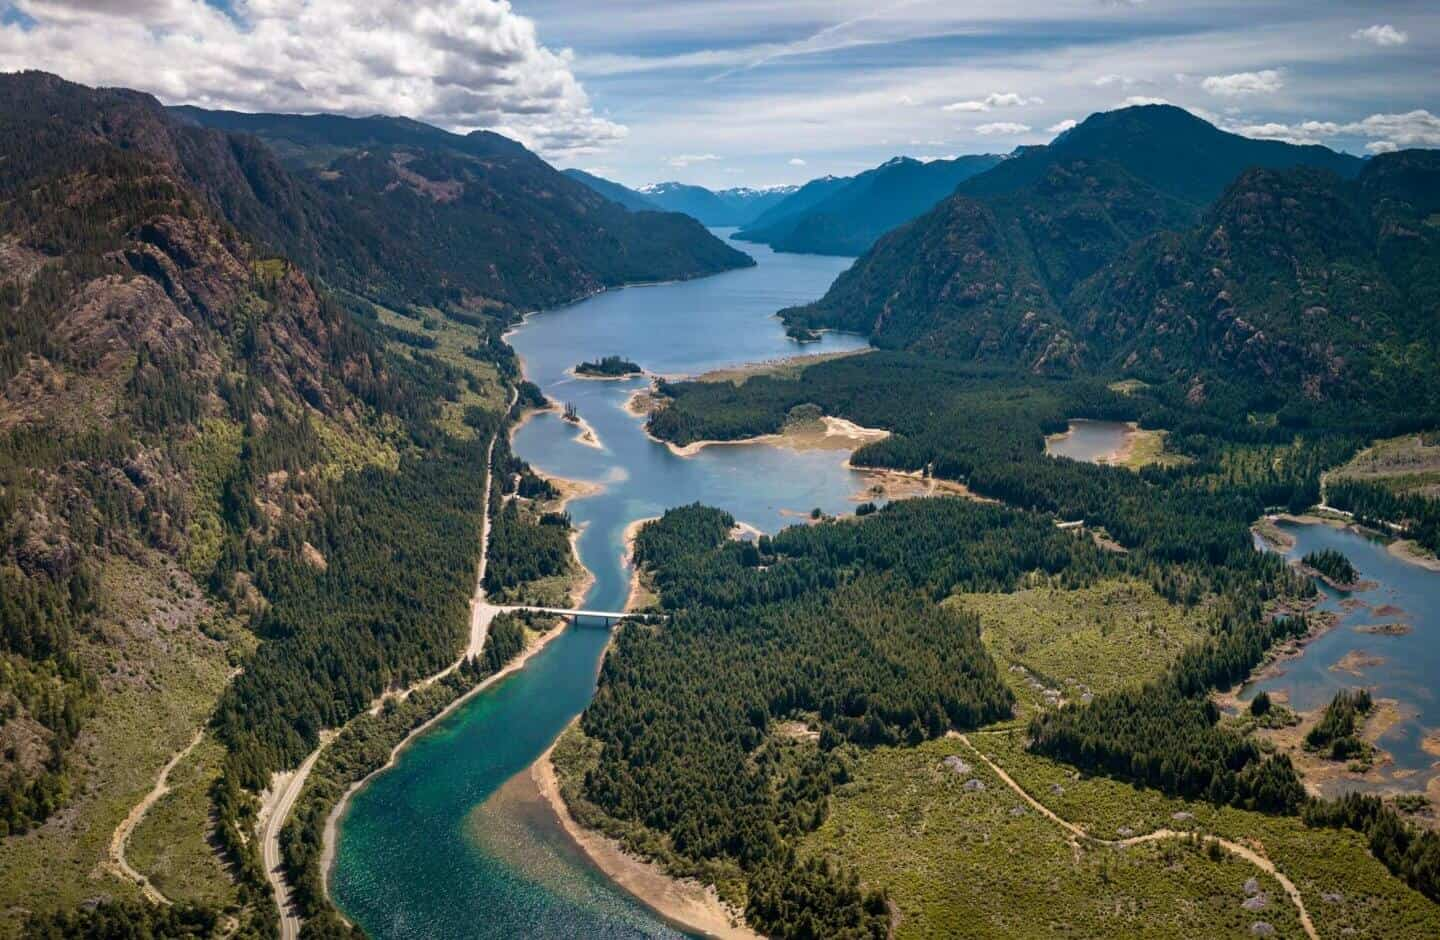 The entrance to Strathcona Provincial Park as seen from the skies!